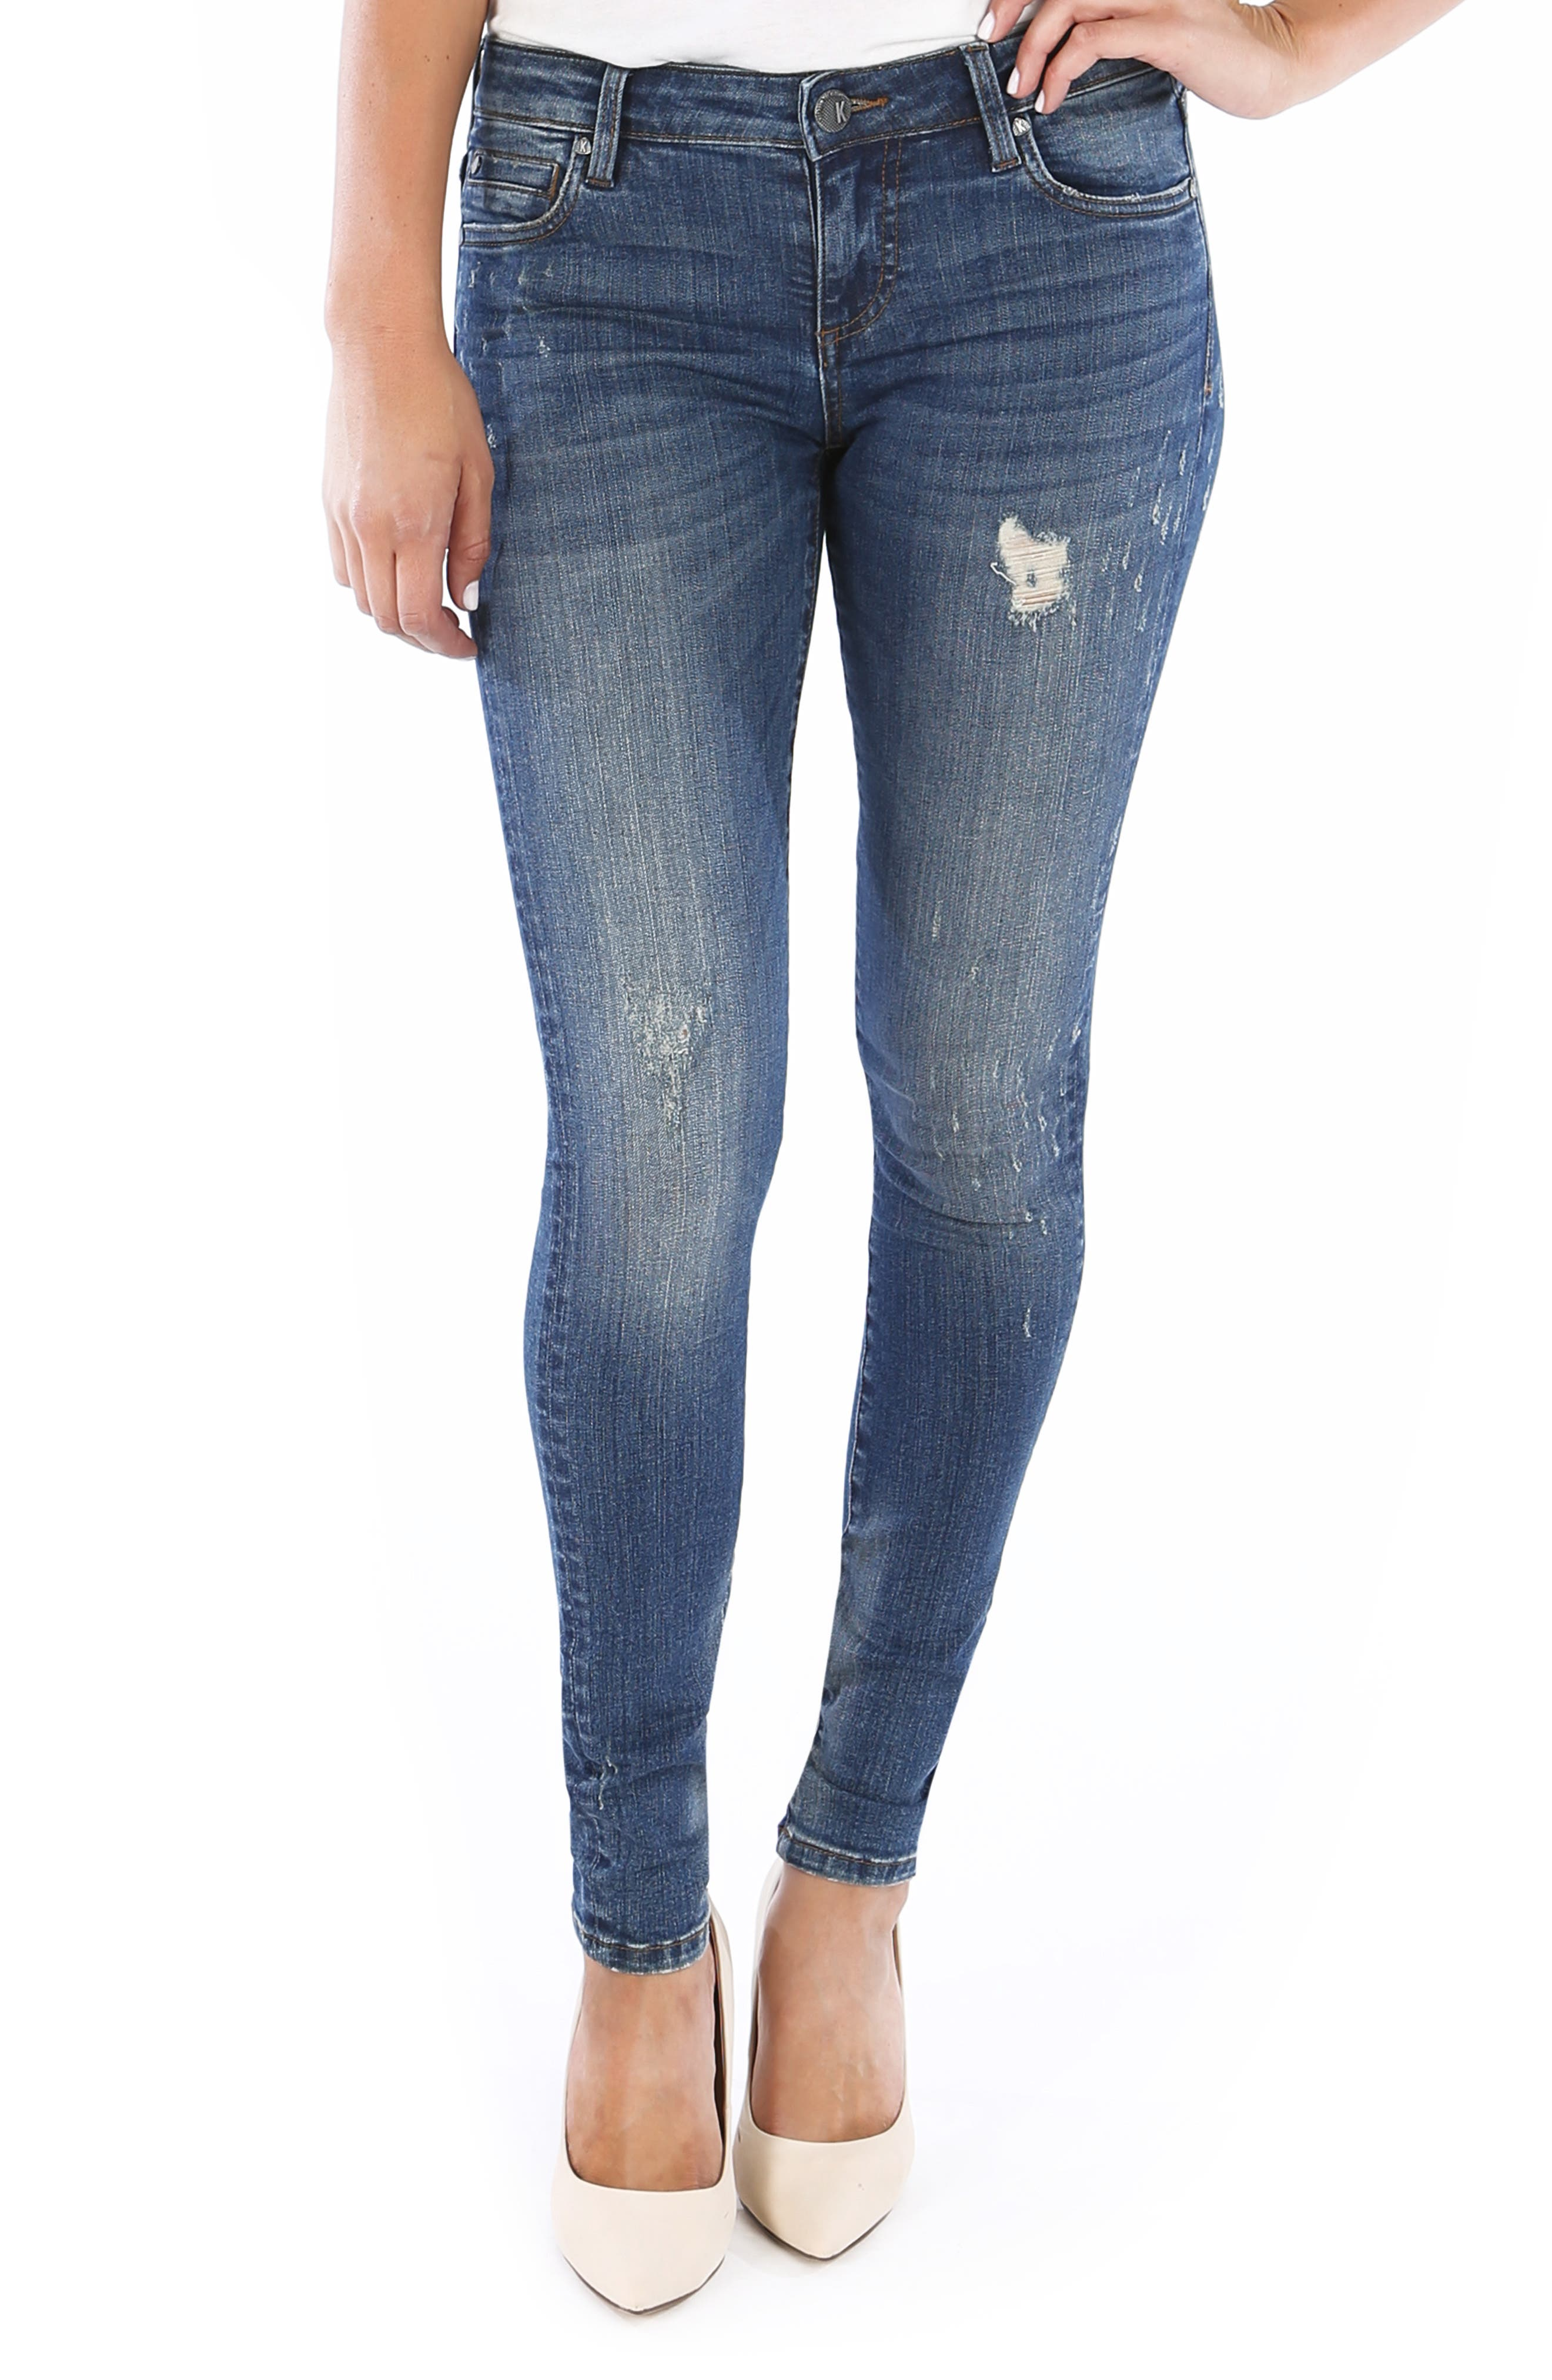 Mia Toothpick Skinny Jeans in Foresee